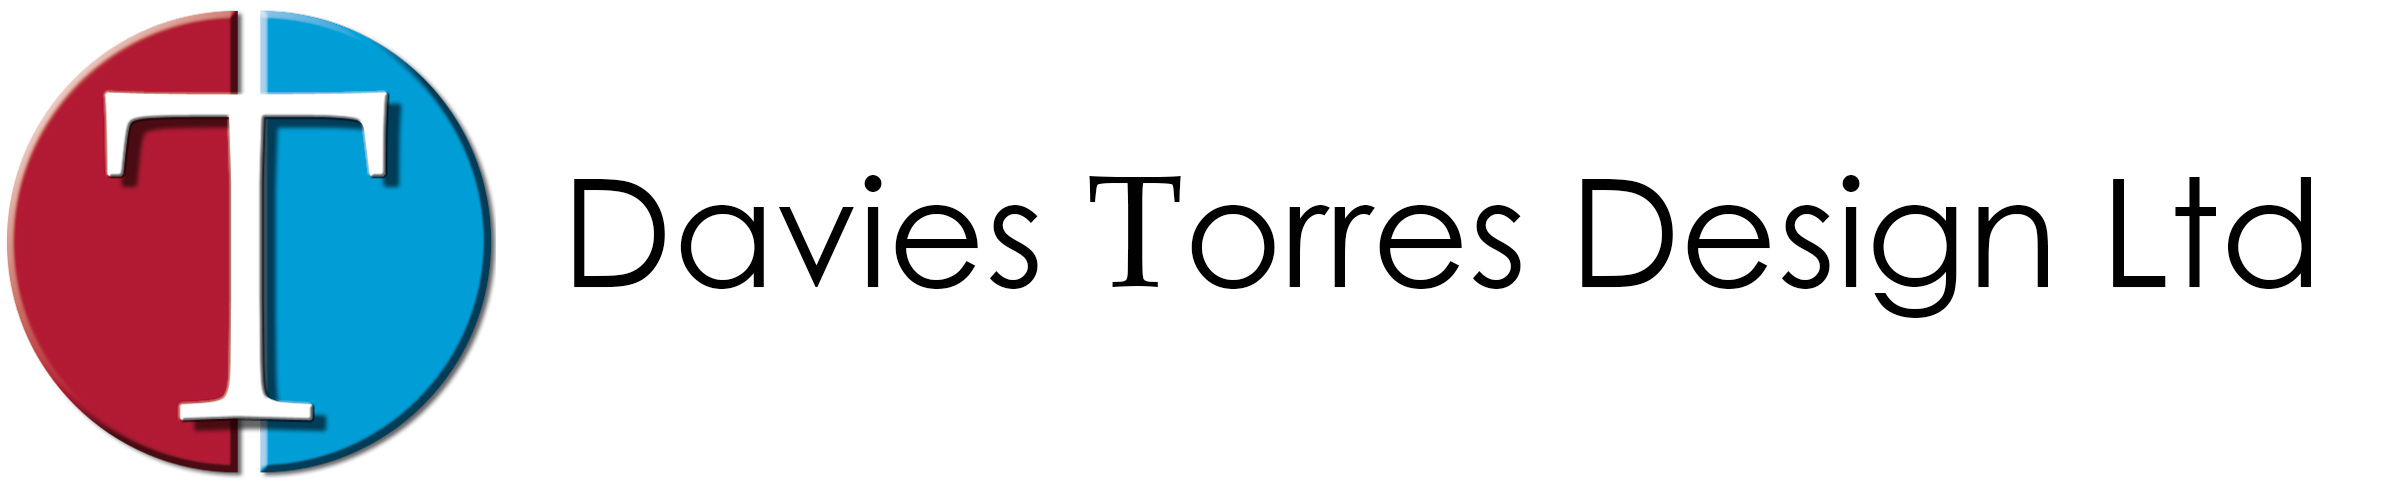 Davies Torres Design Ltd Logo